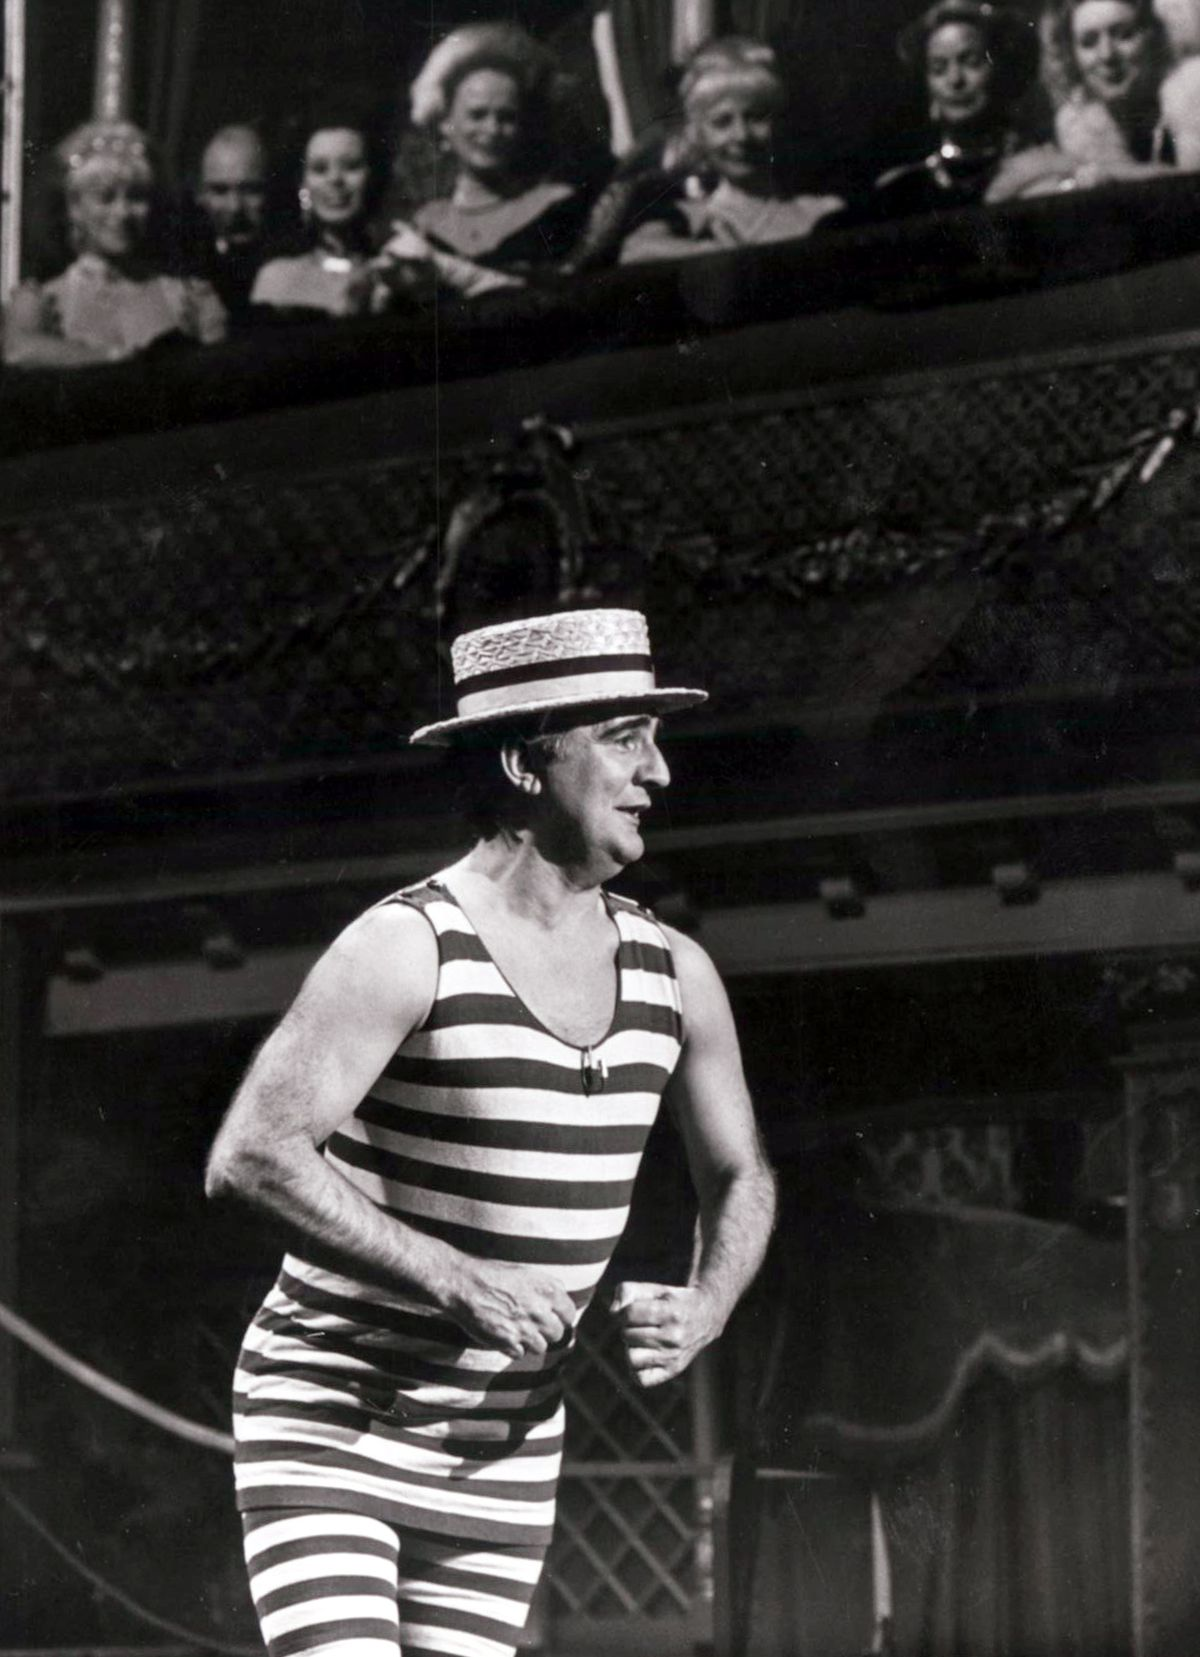 No-one could model an Edwardian bathing costume and boater hat better than Billy Dainty, pictured here in The Good Old Days, on BBC1 in 1980